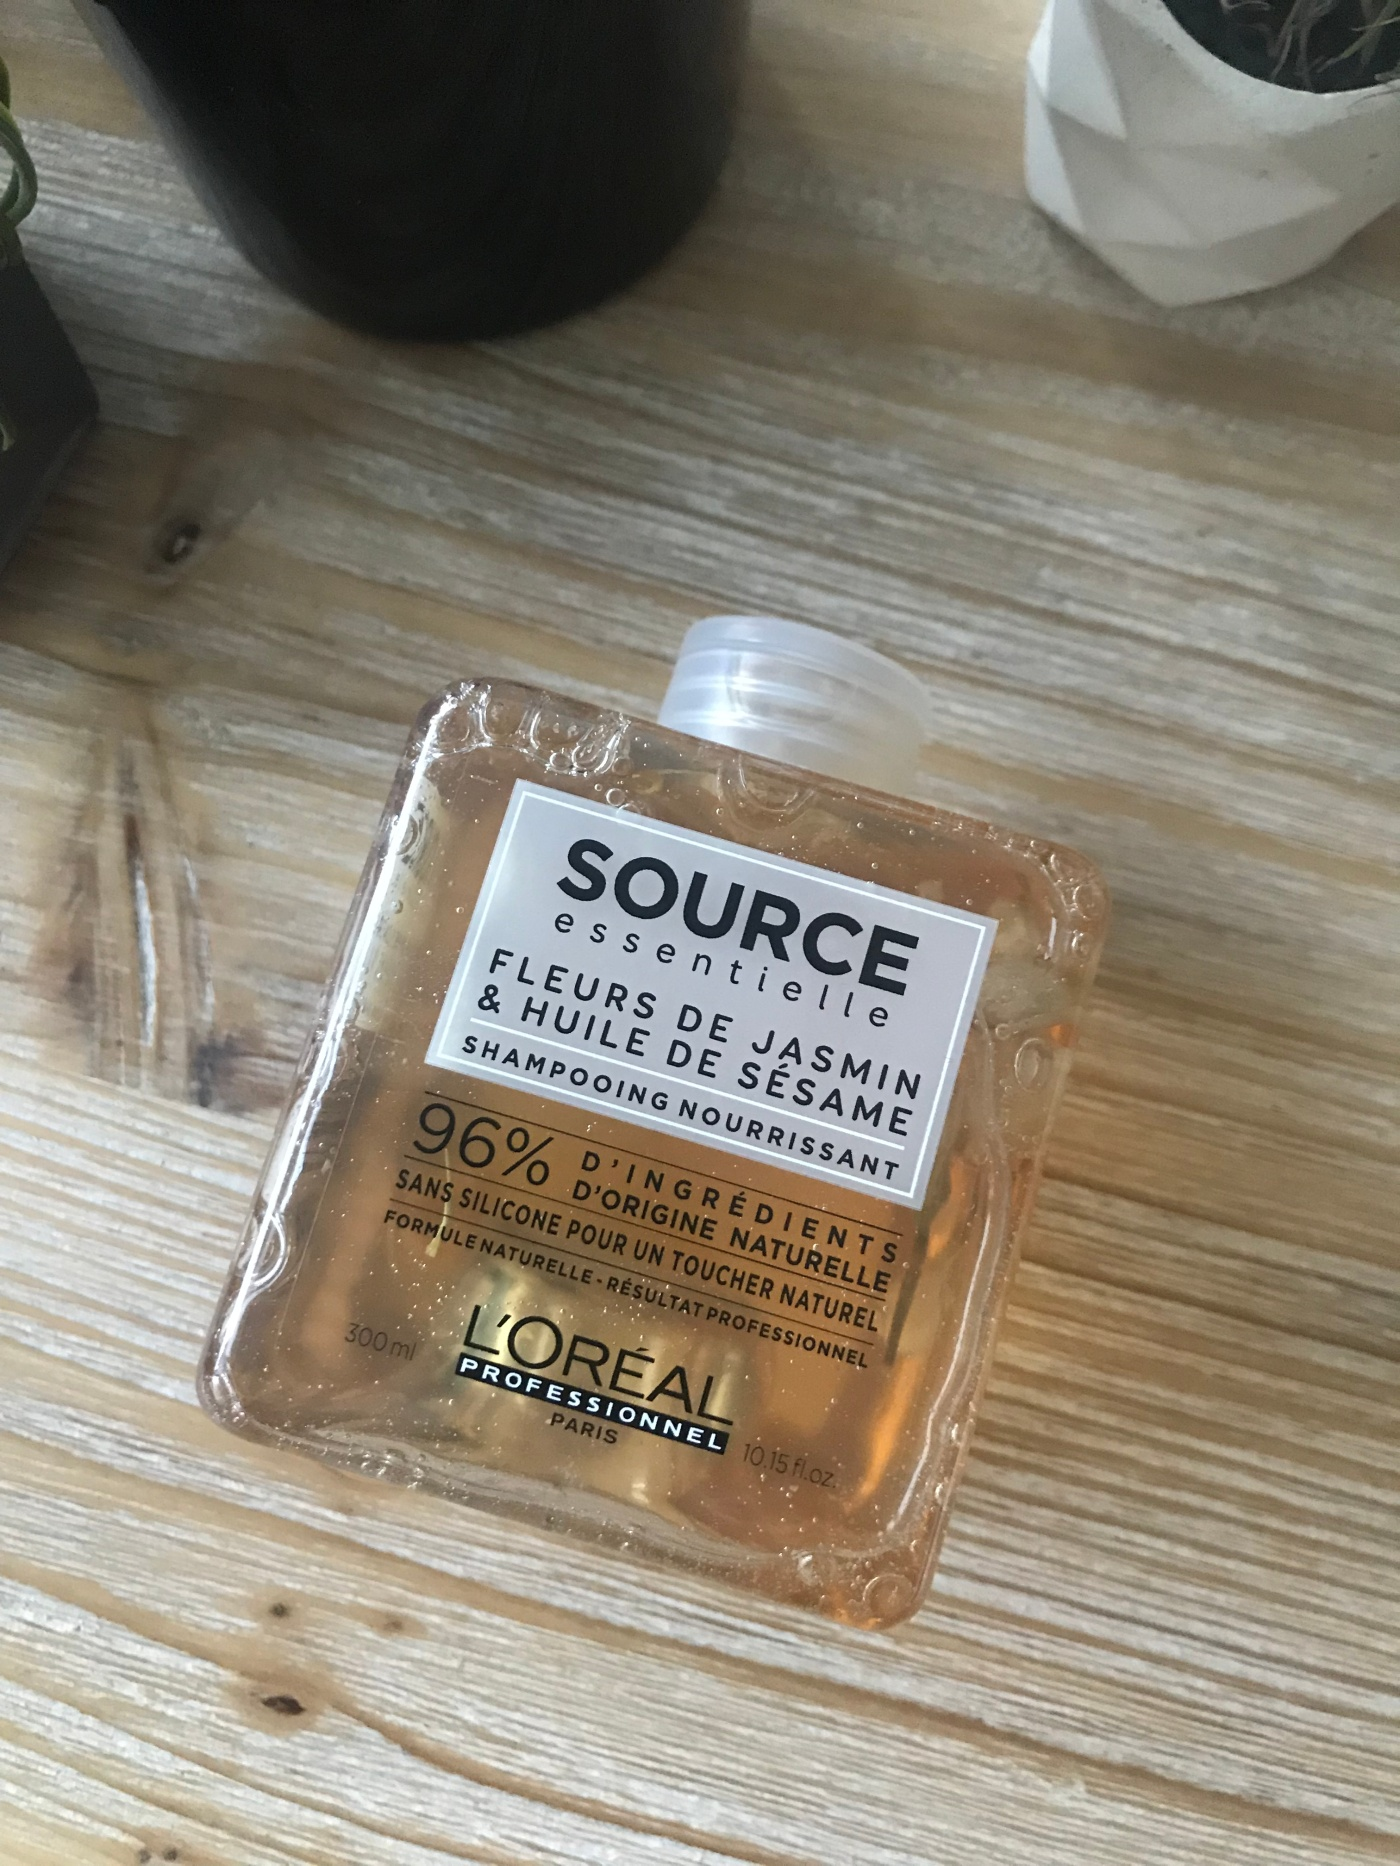 source-essentielle-shampooing-nourissant-loreal-carnetdelu